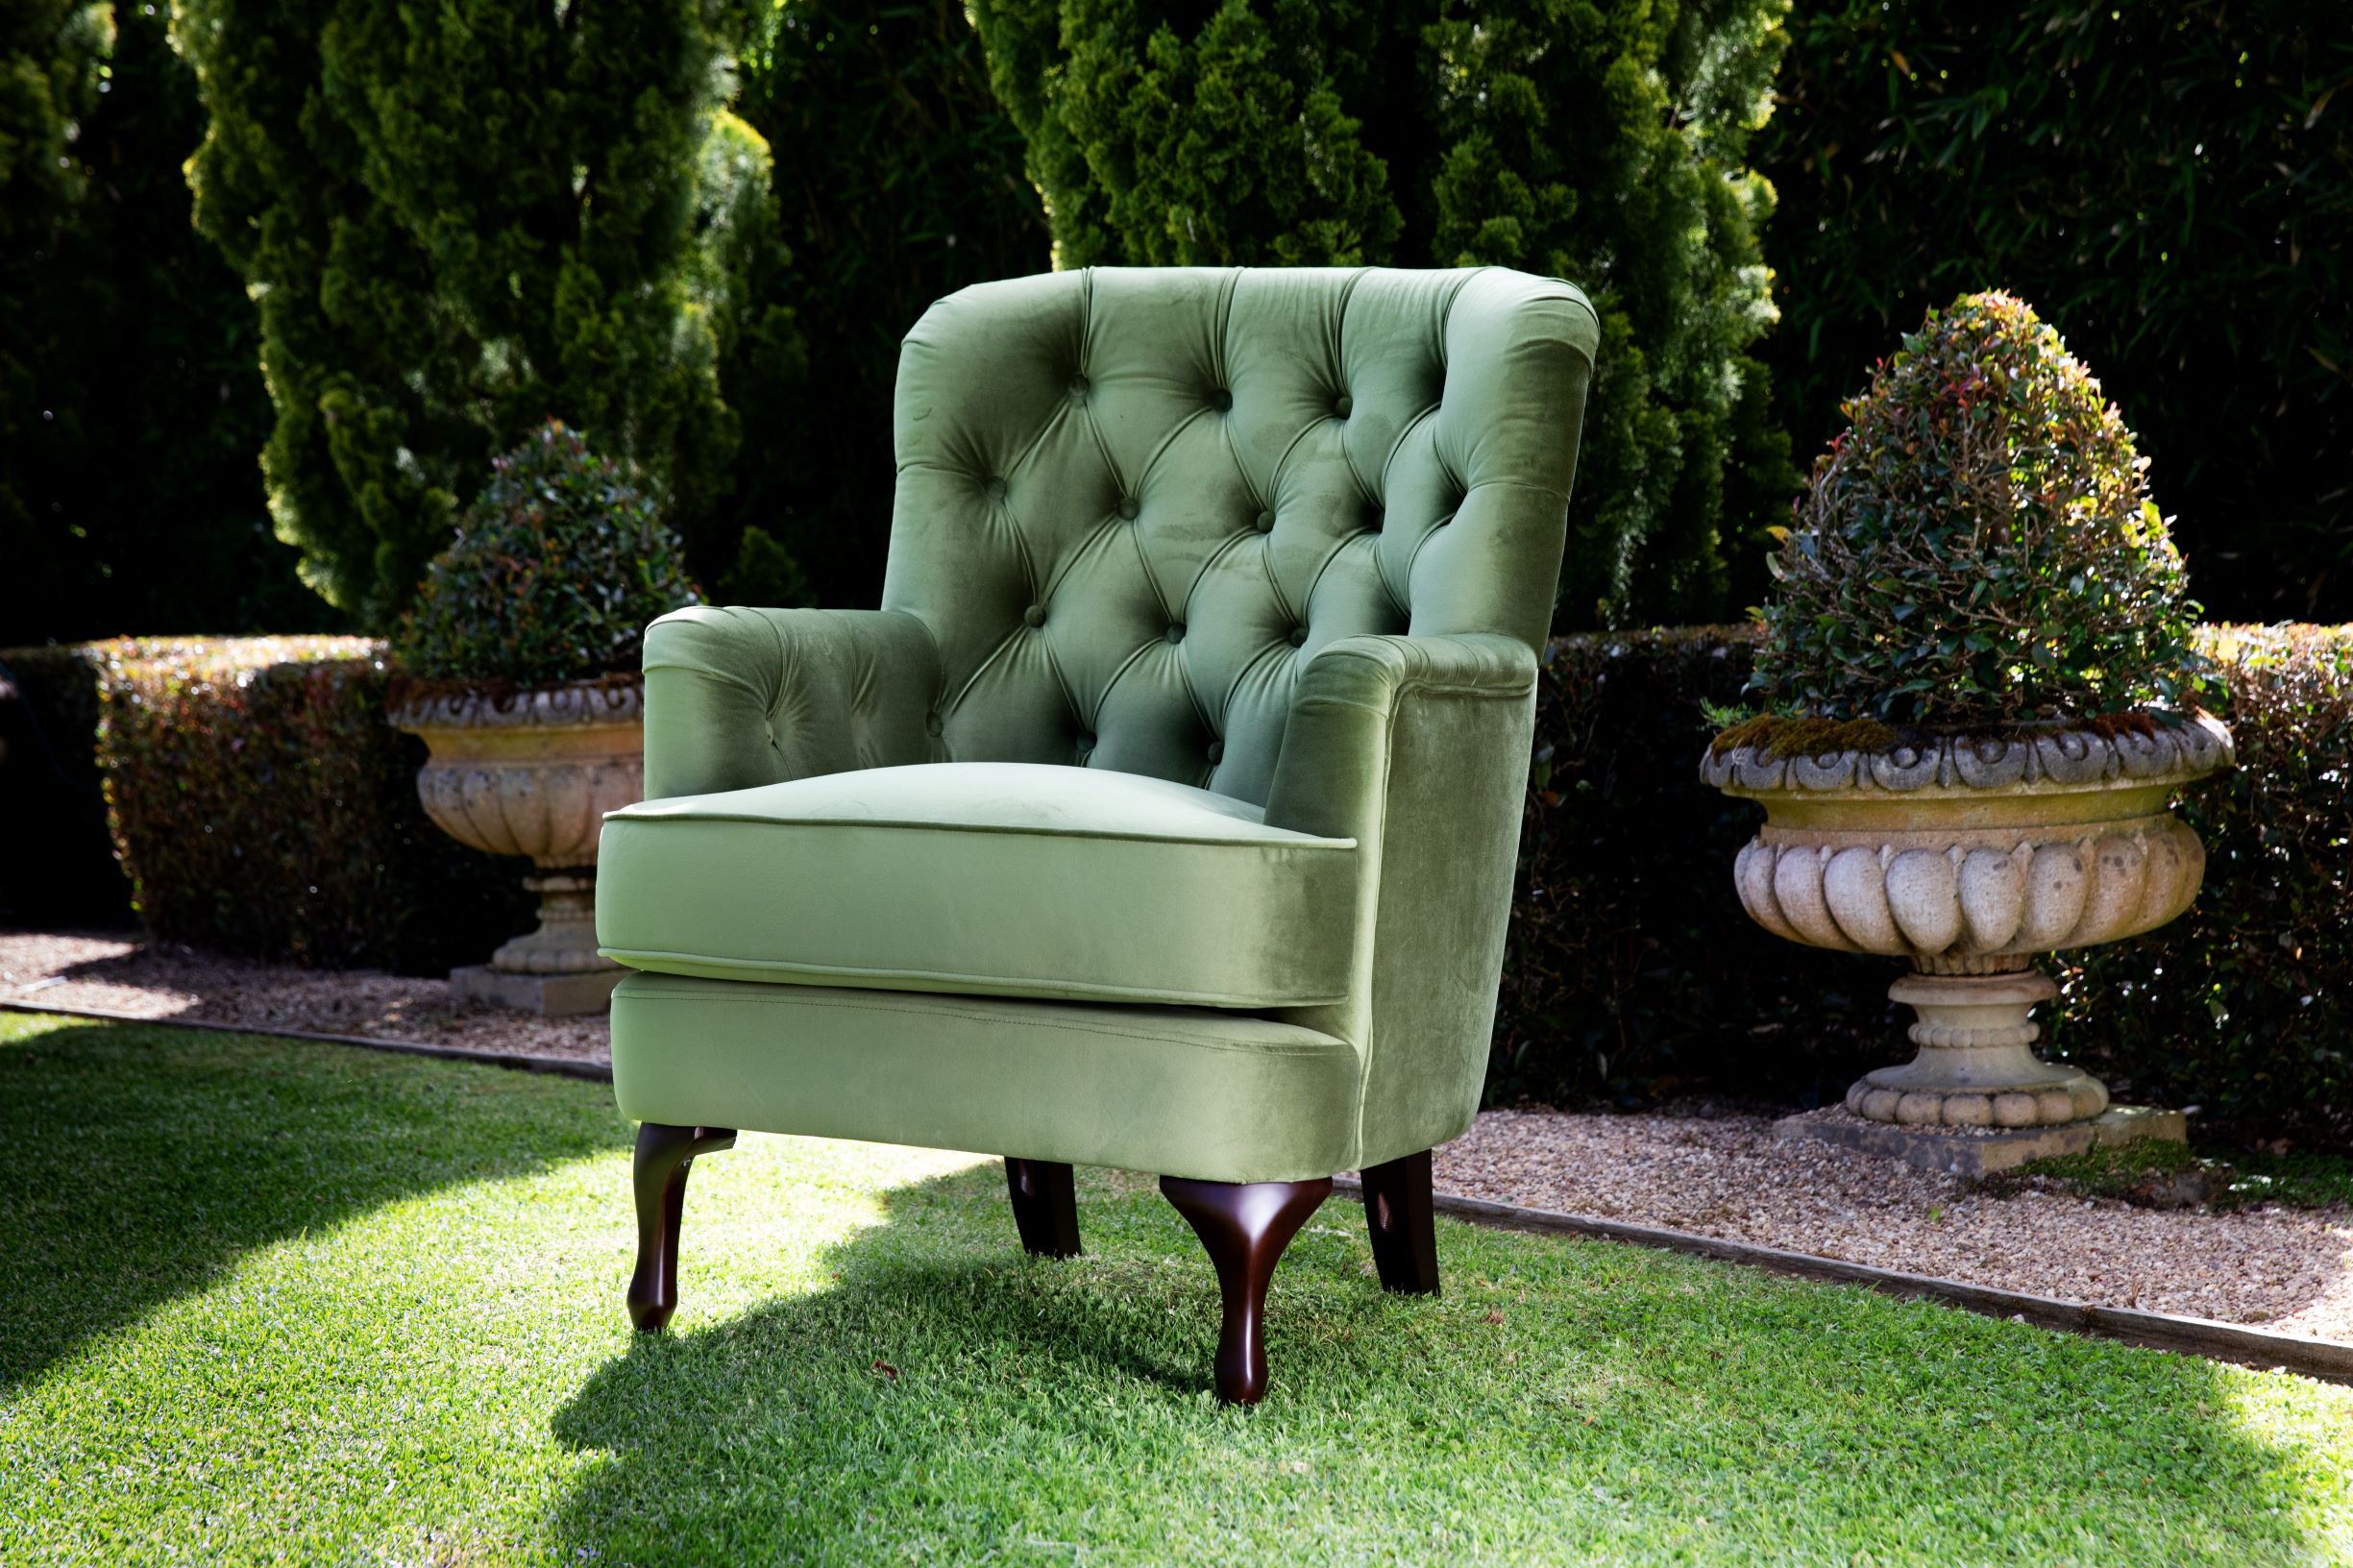 Fully upholstered green velvet chair with deep button back and cabriole leg.